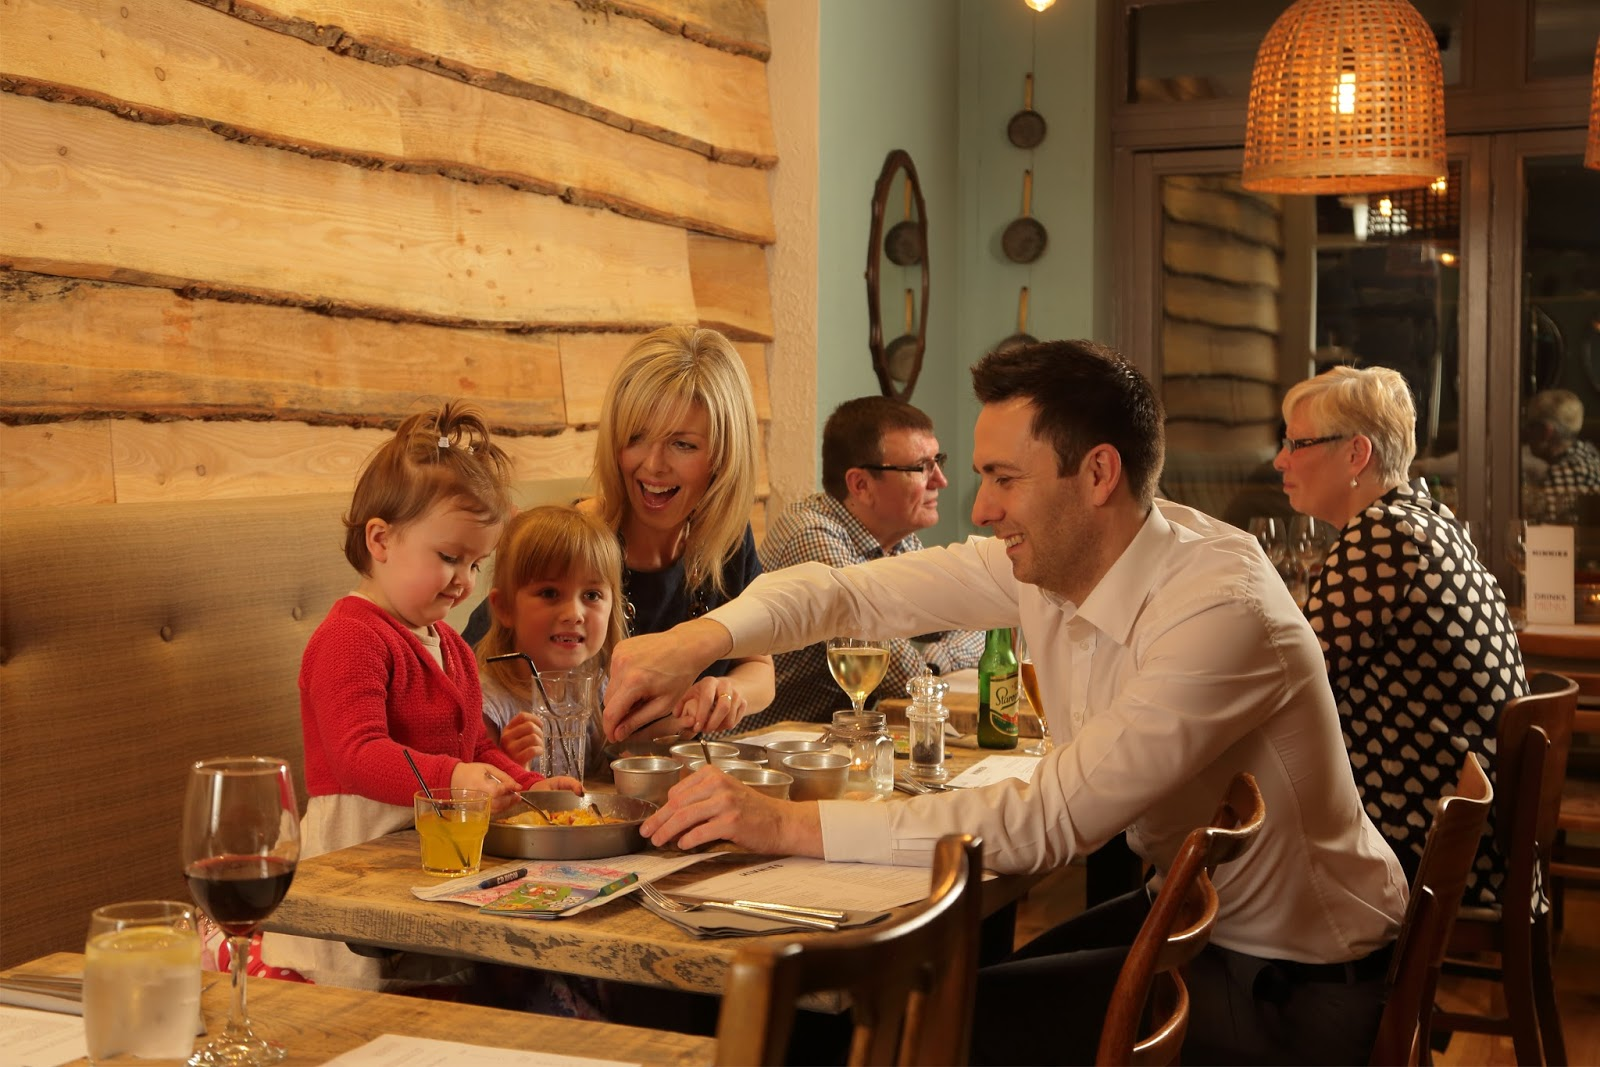 Family Weekend brunch menu at Hinnies Restaurant, Whitley Bay